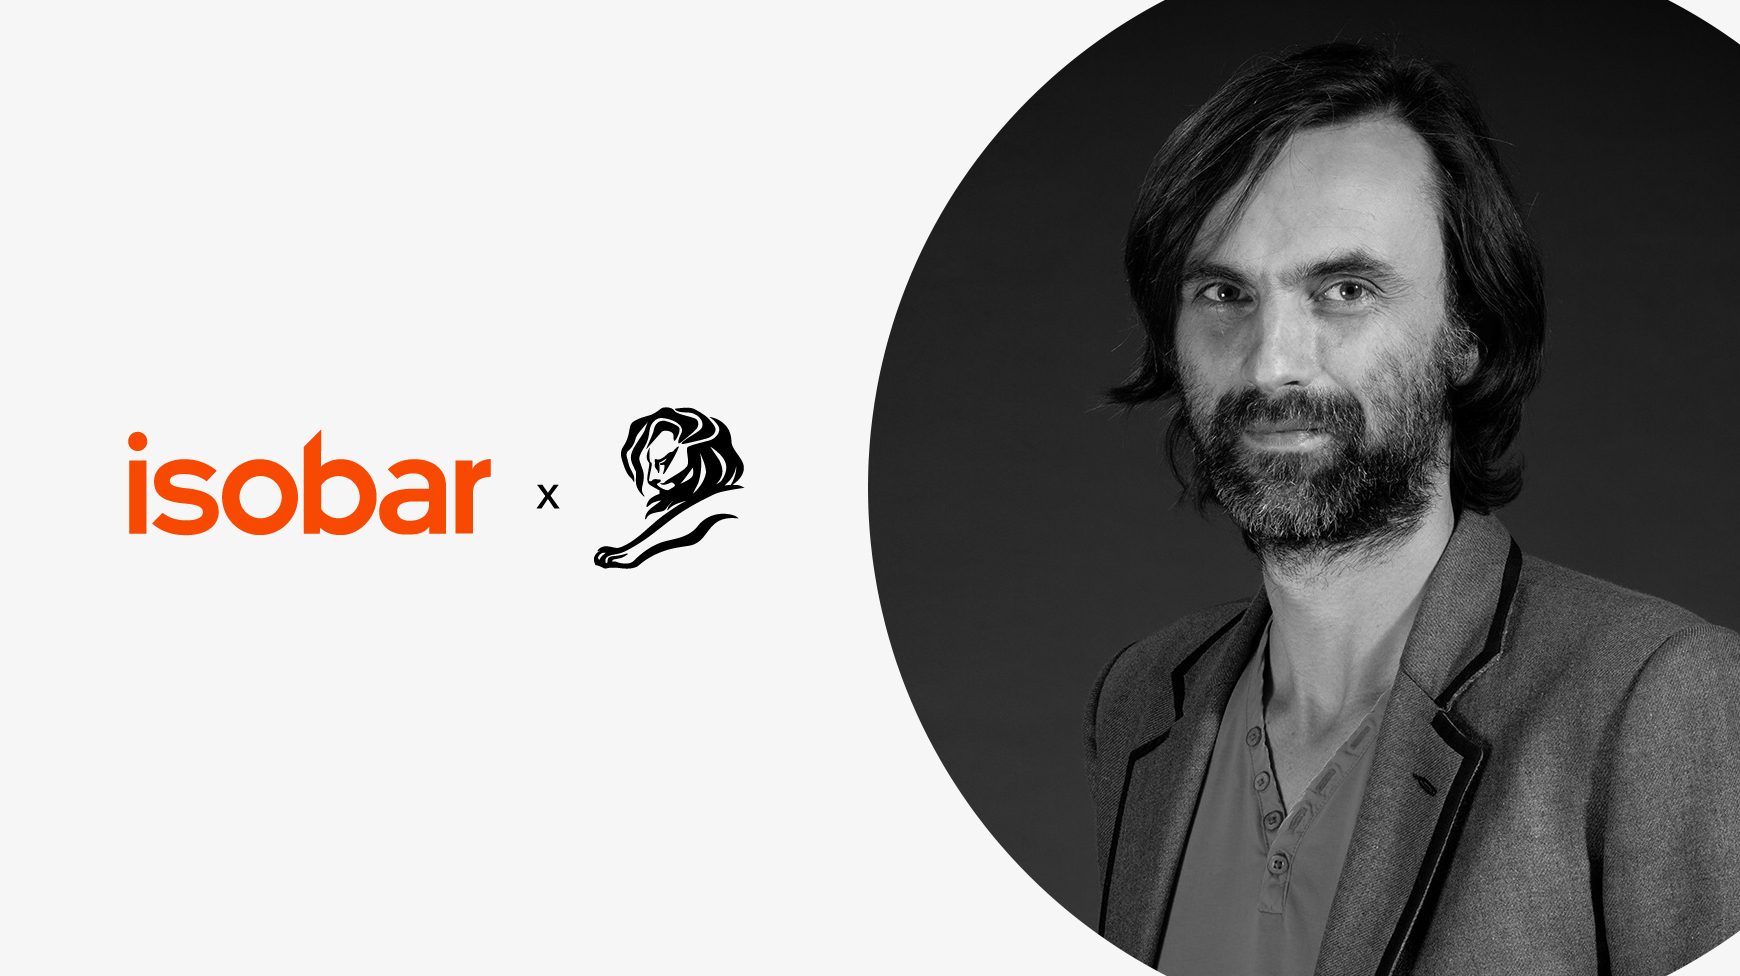 Isobar CXO Simon Gill Explains why he is discussing Blockchain at Cannes 2019